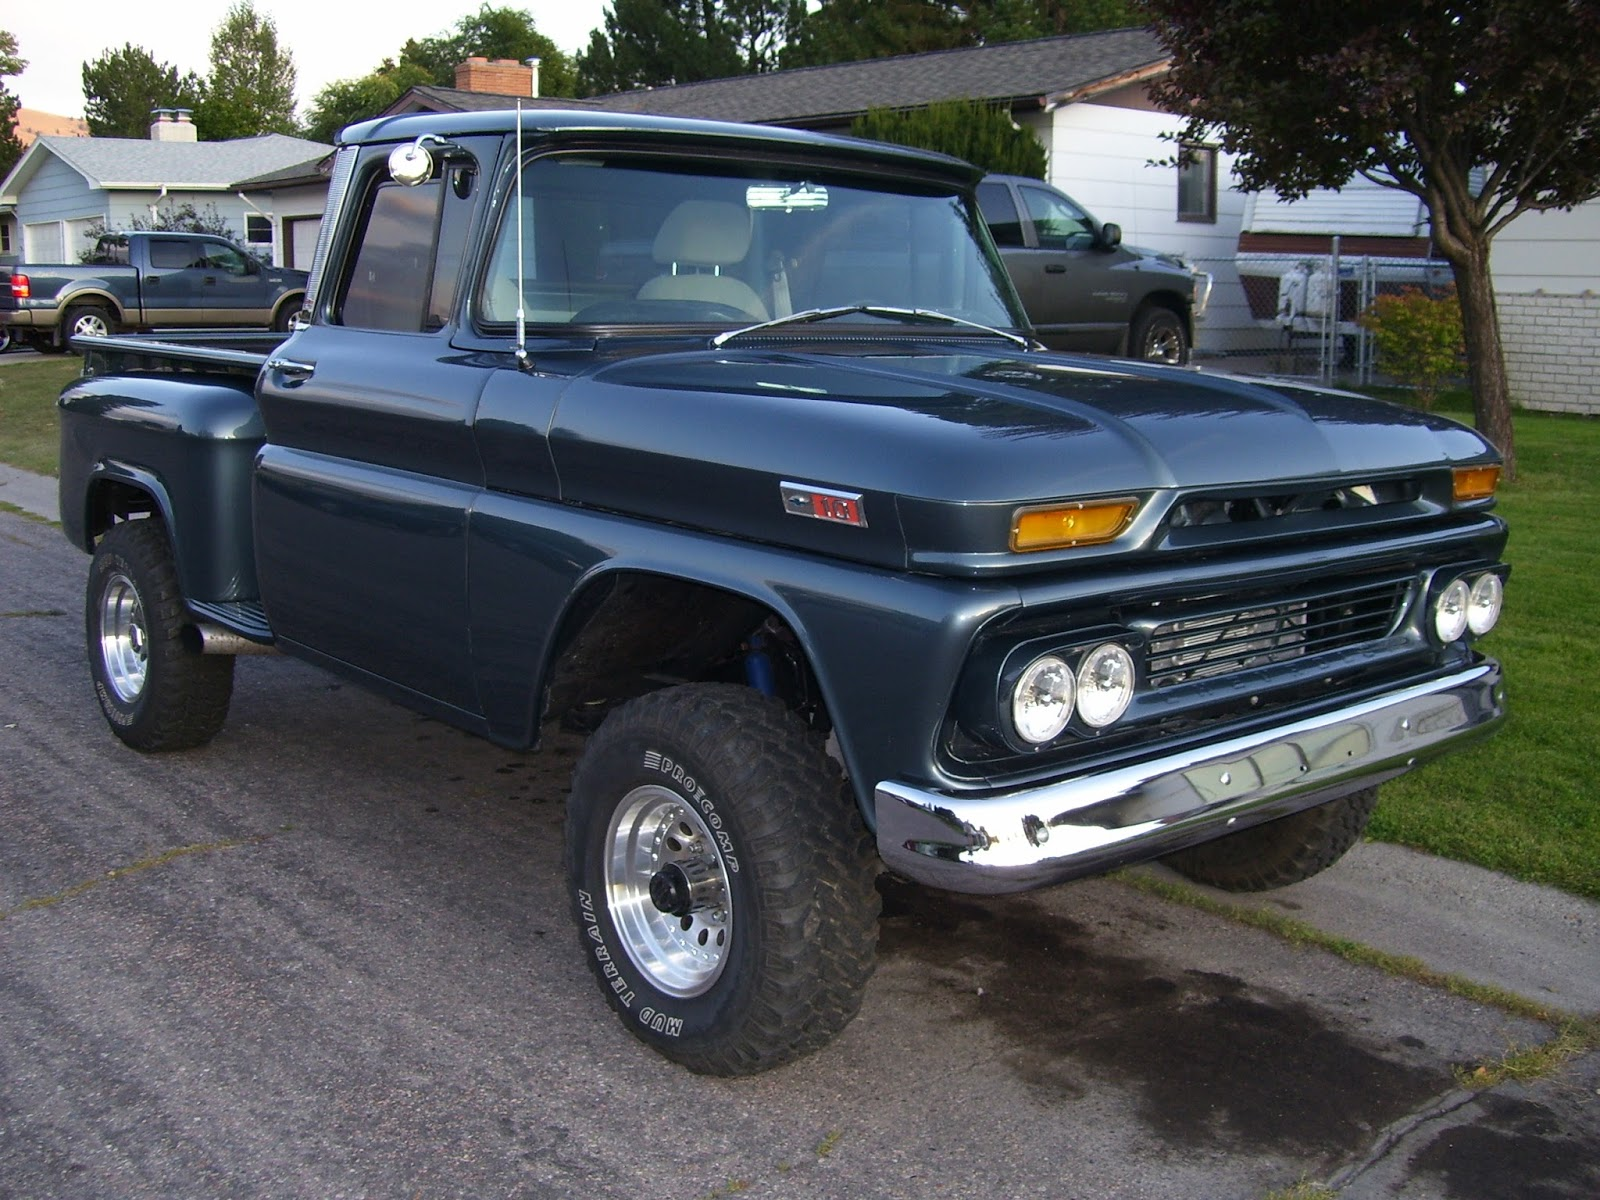 Lifted Chevy Trucks Free July Nuts And Boltslifted Truck 1966 C10 Cheap Stepside With